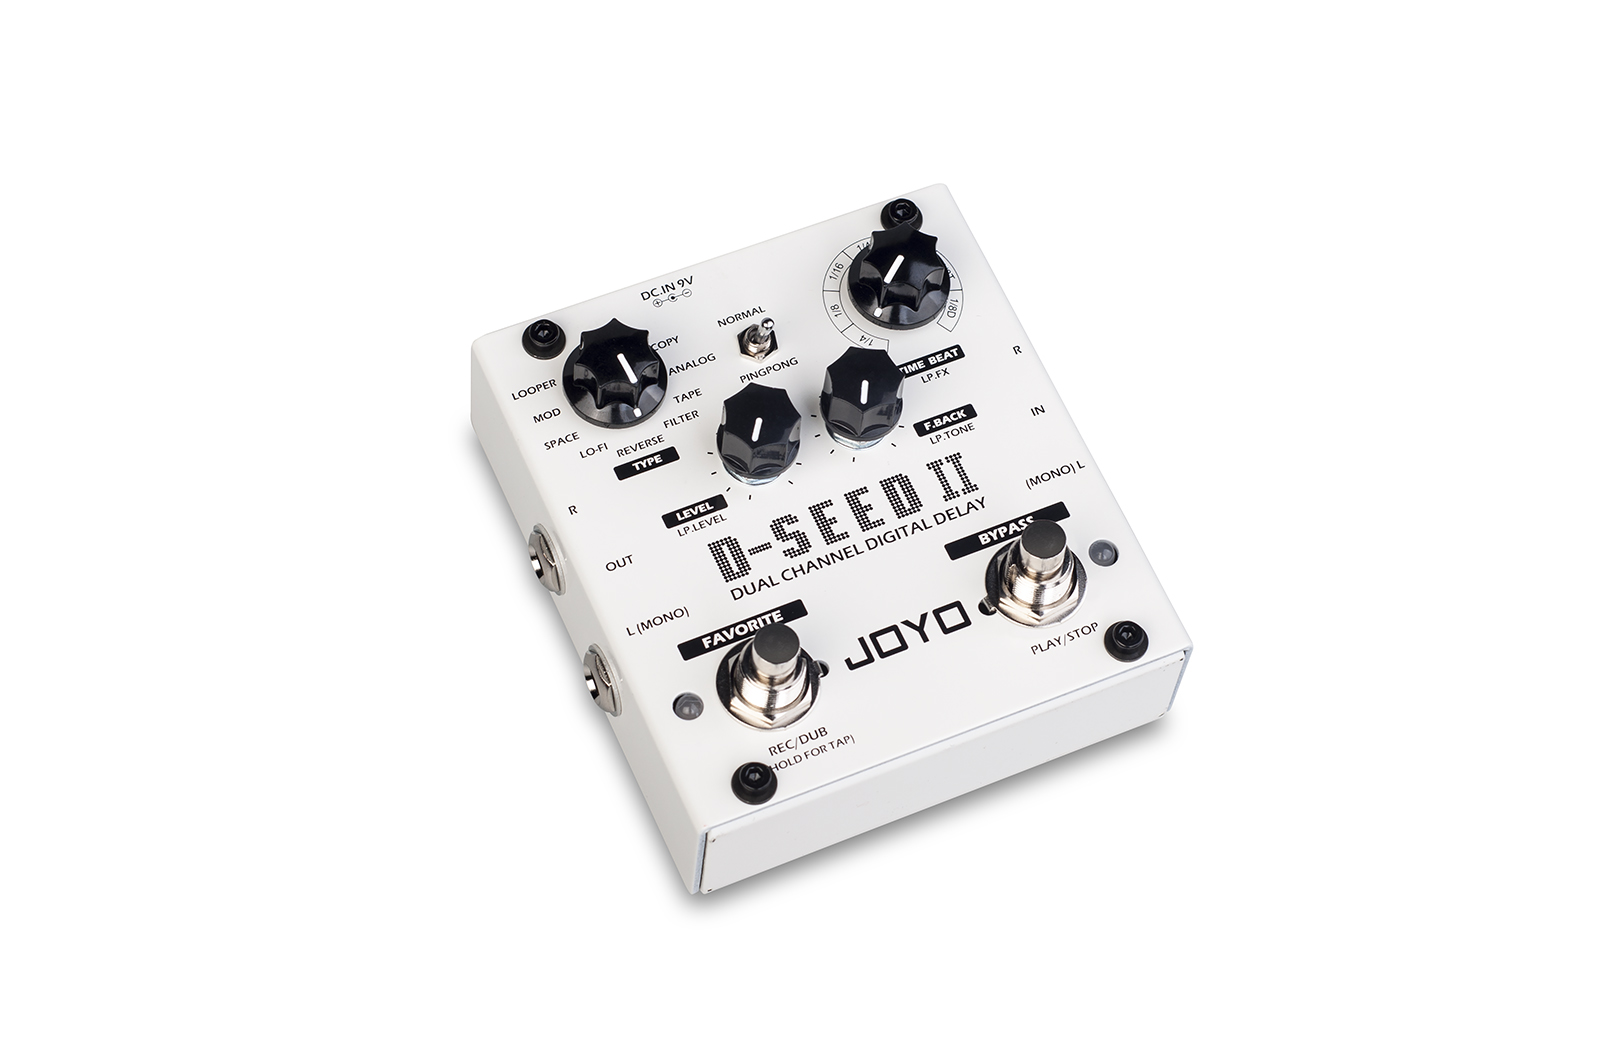 [D-SEED 2 | Dual Channel Digital Delay Stereo]